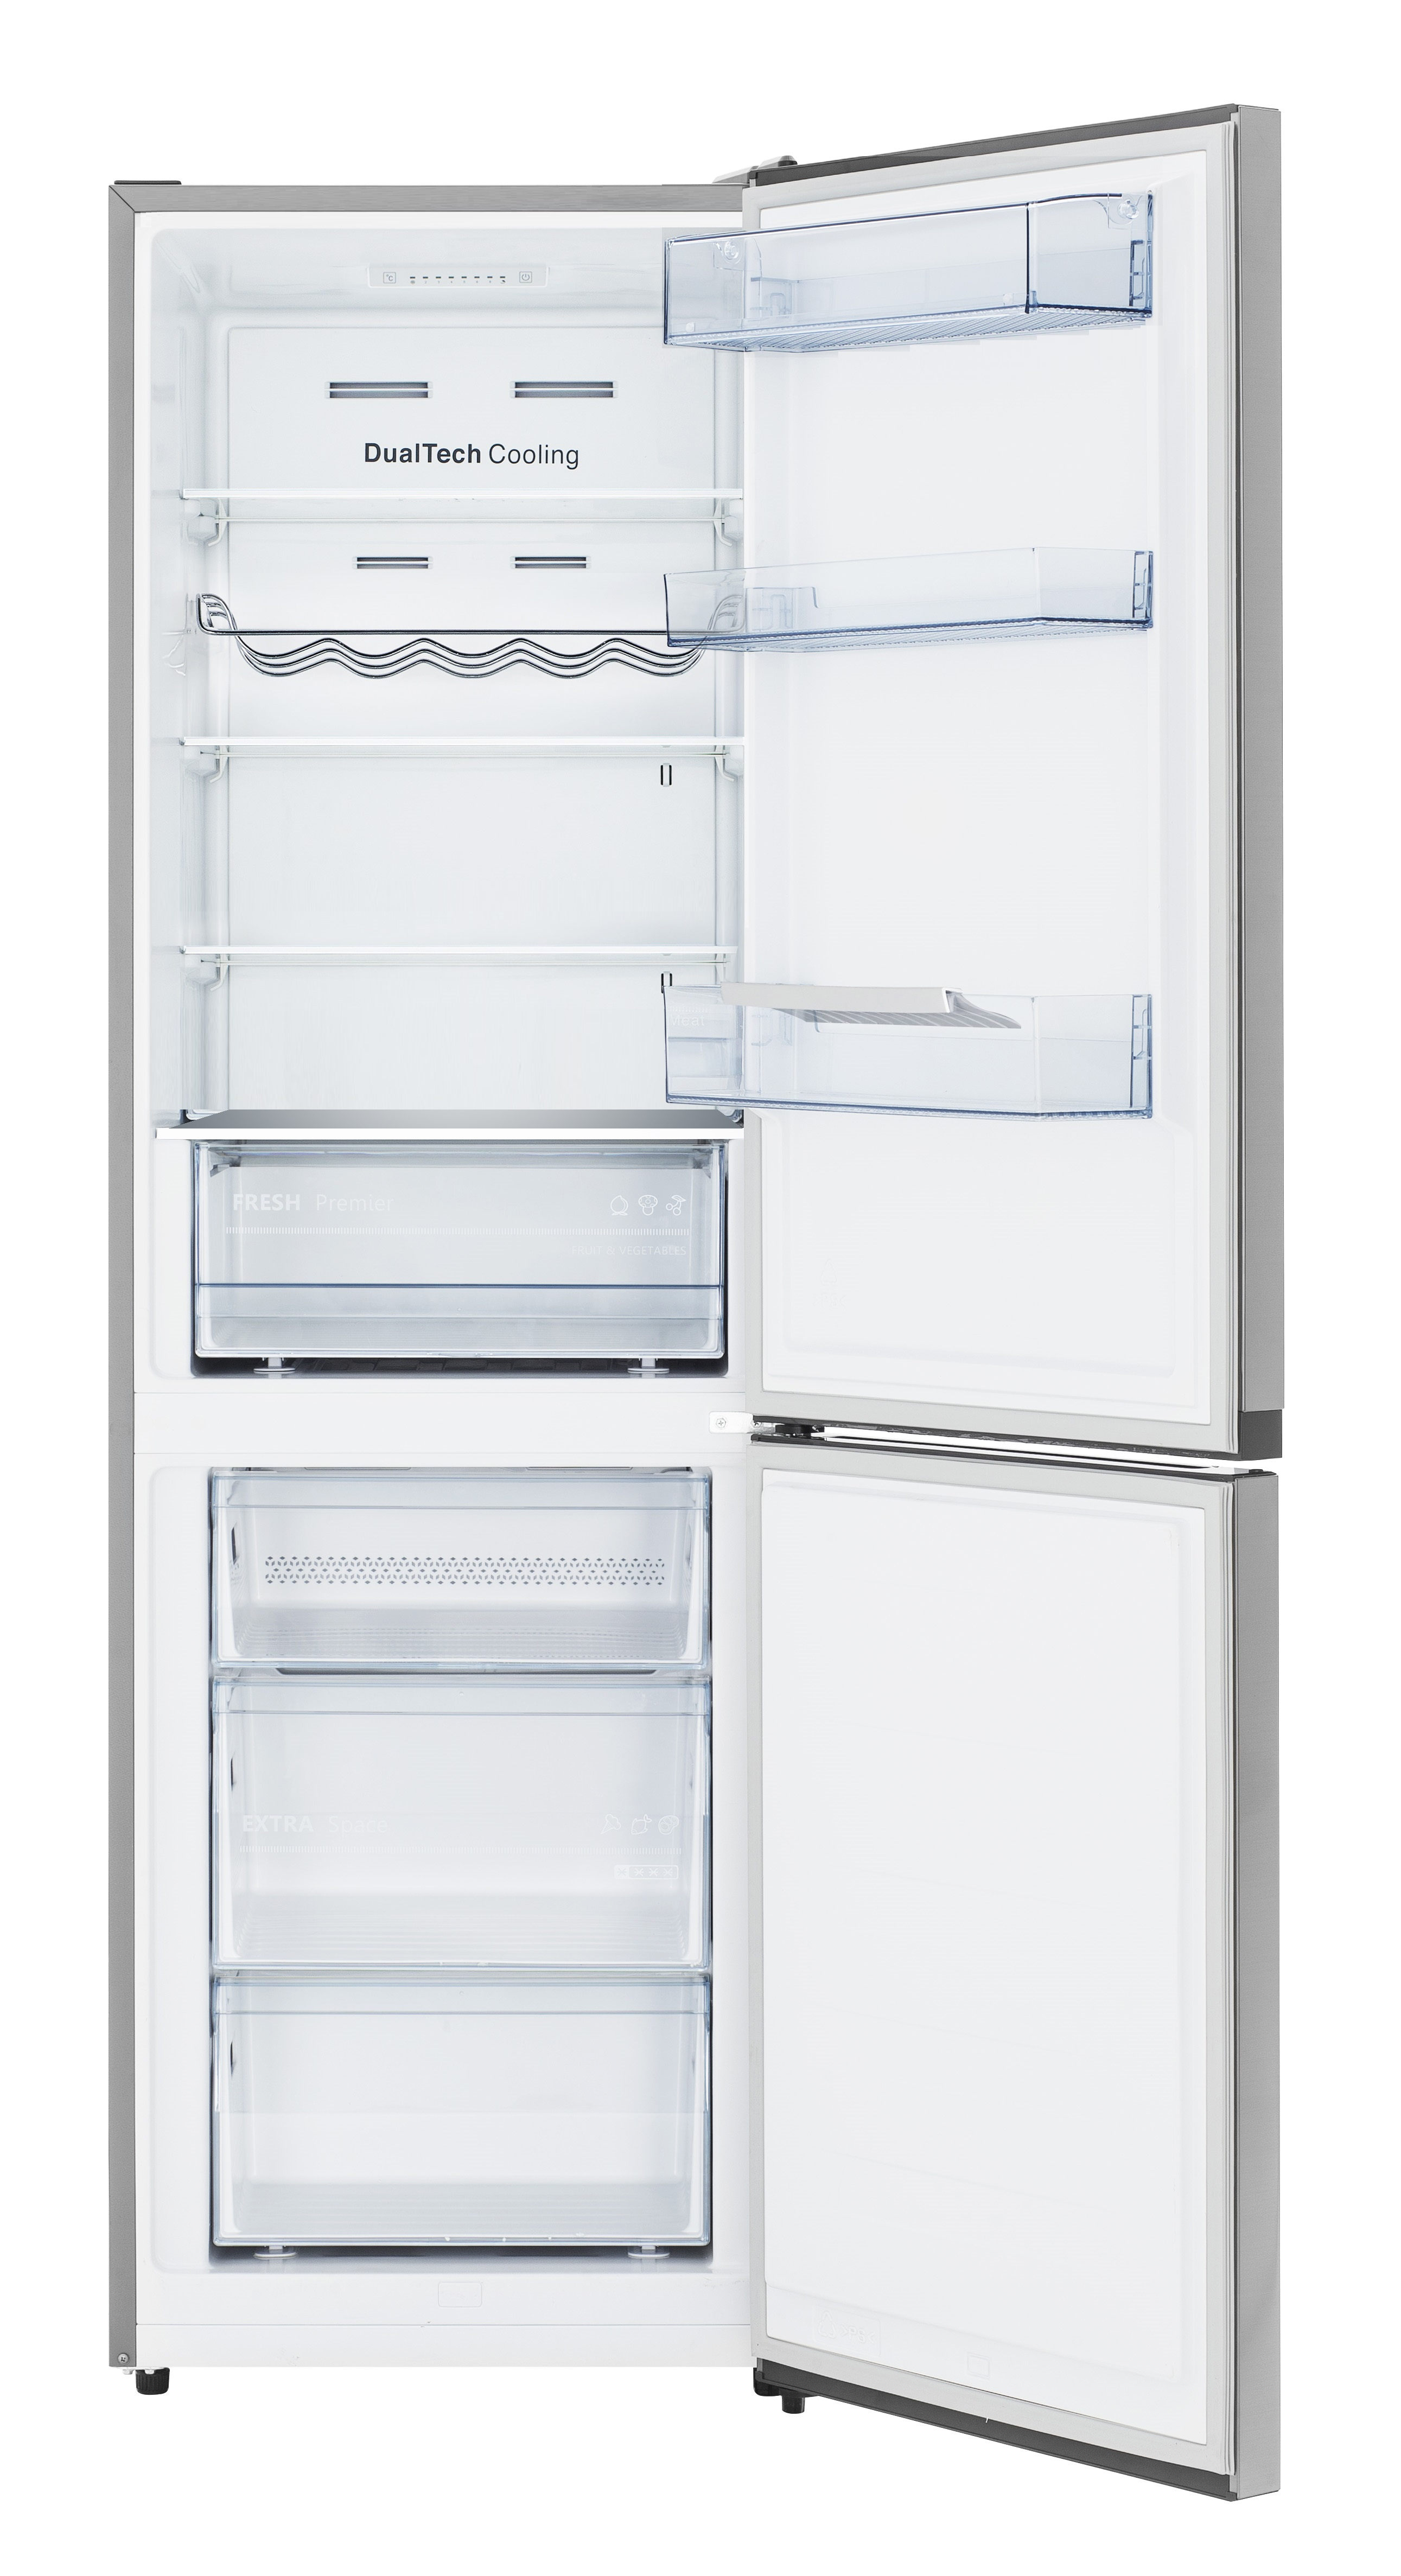 Conserv 10.8 Cu. Ft. Tall Bottom Mount Frost-Free Apartment Refrigerator in Stainless Steel